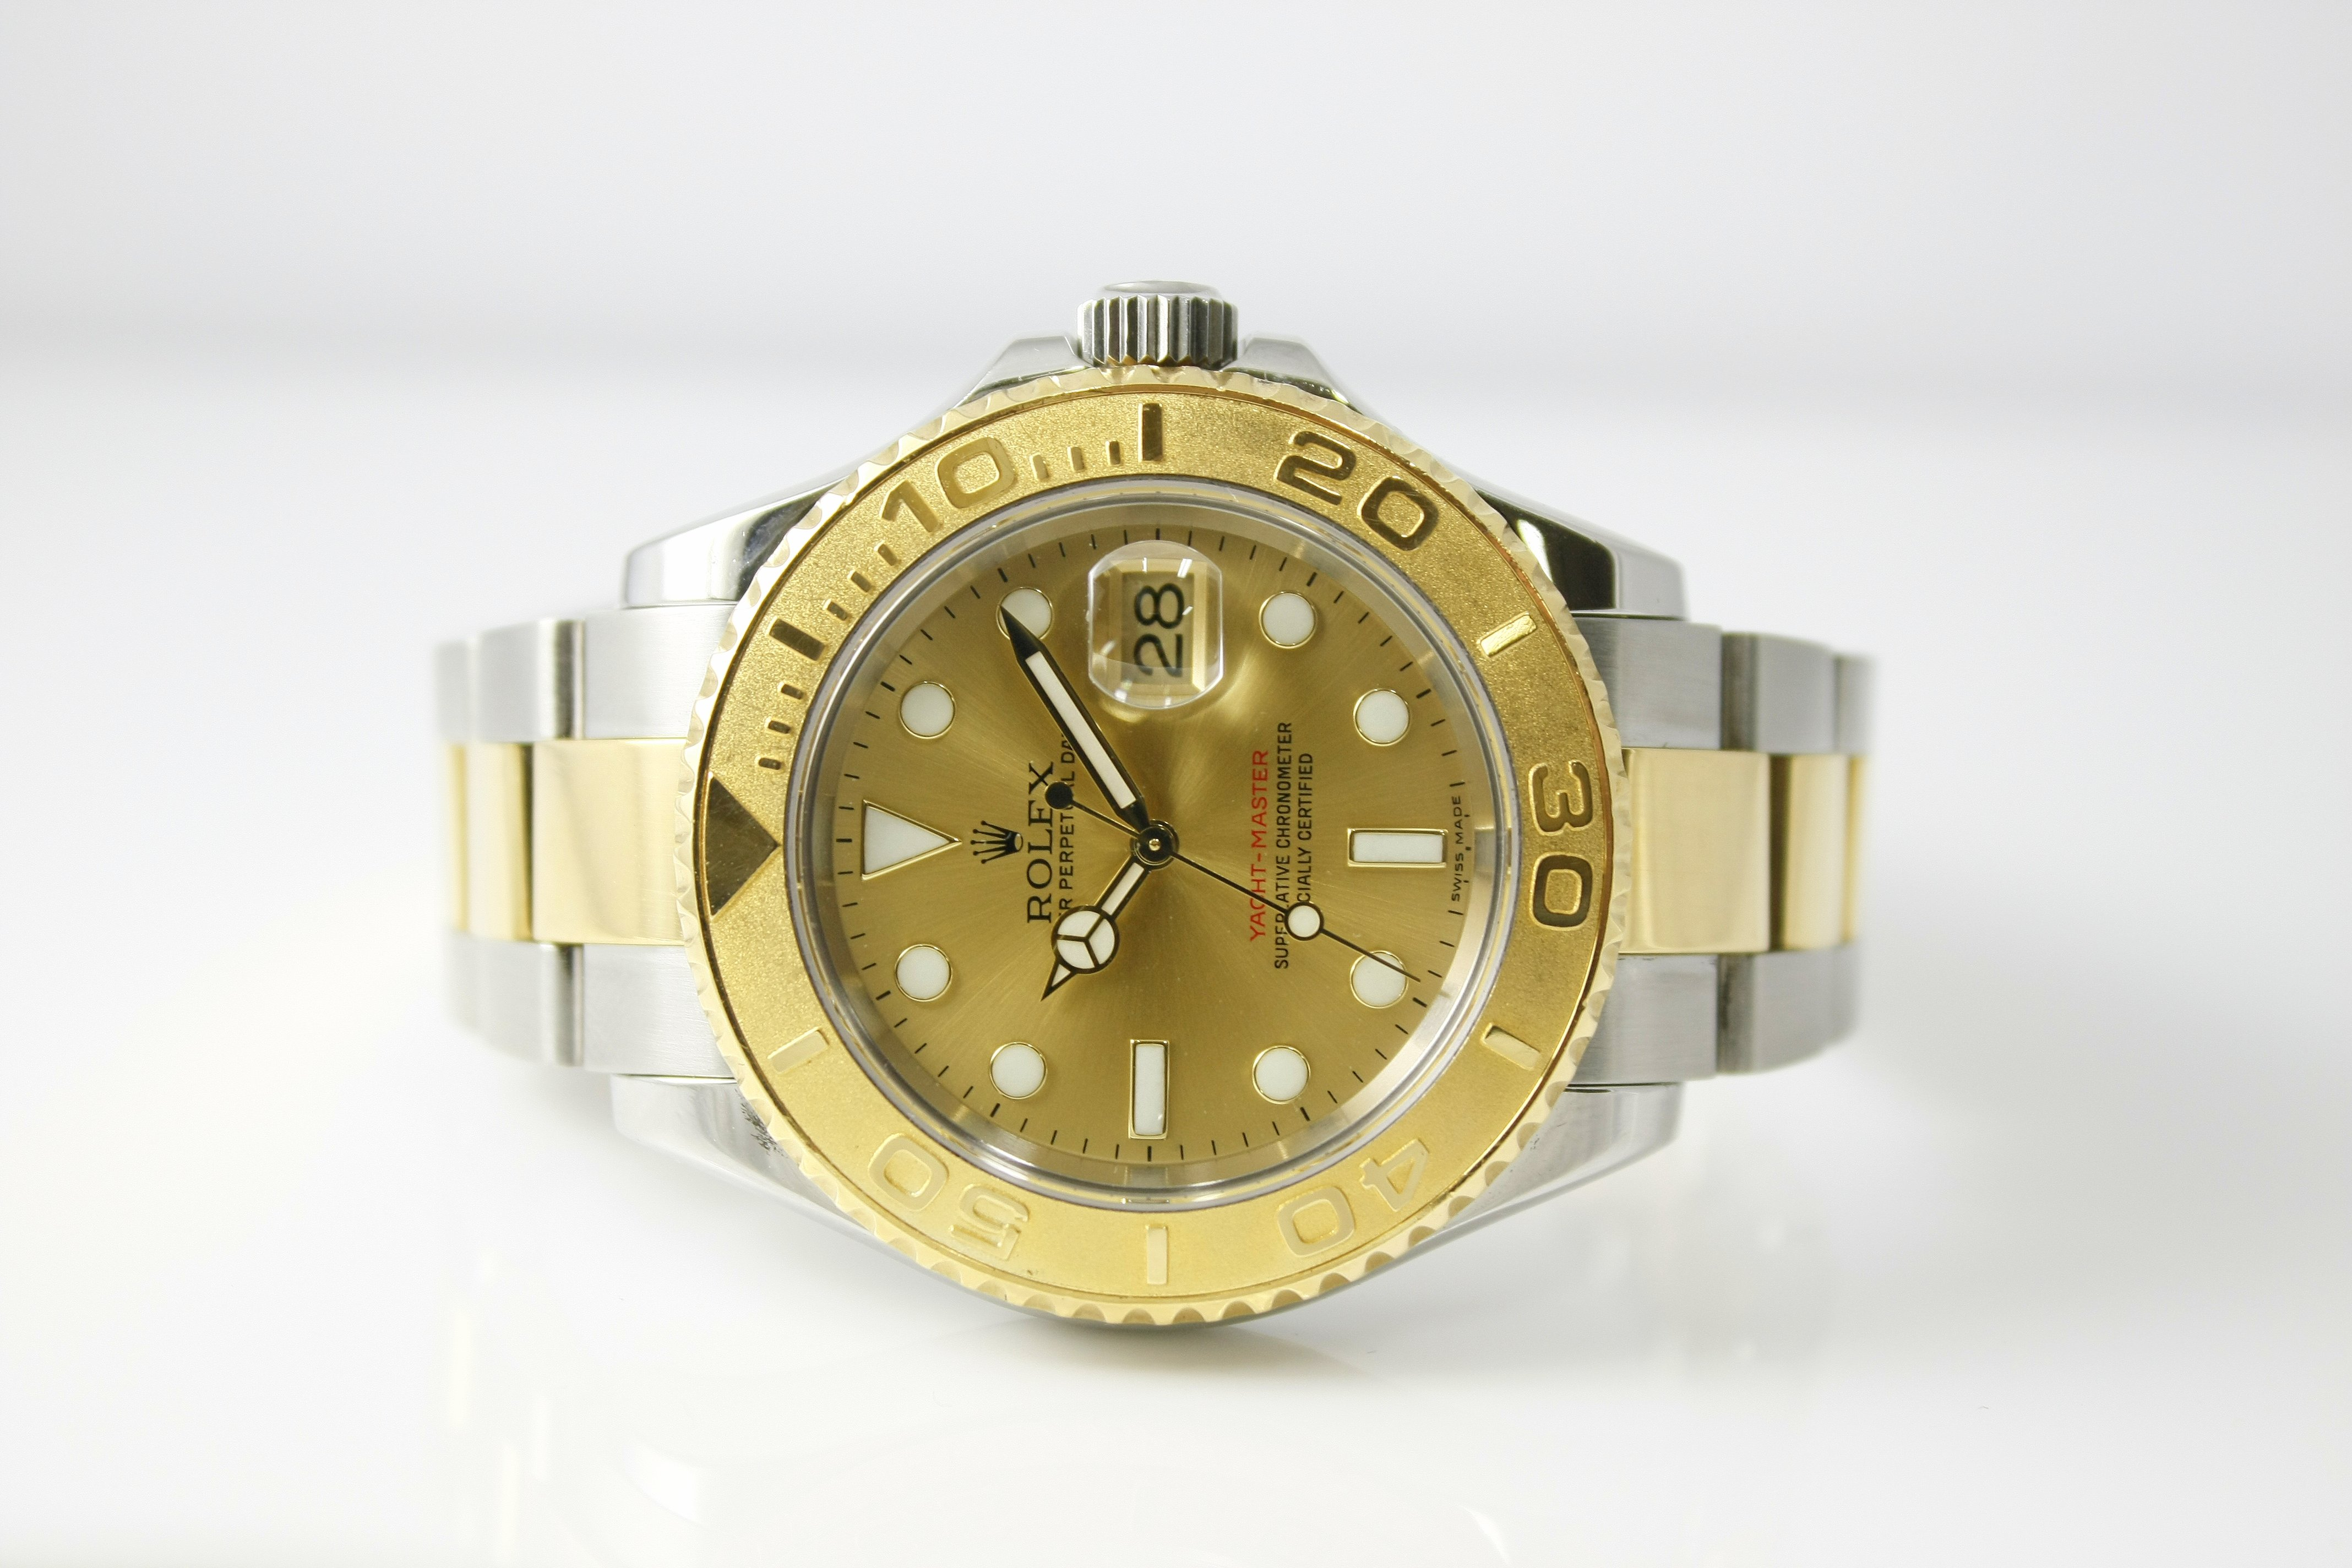 Rolex Yacht-Master Two-Tone - $7,600